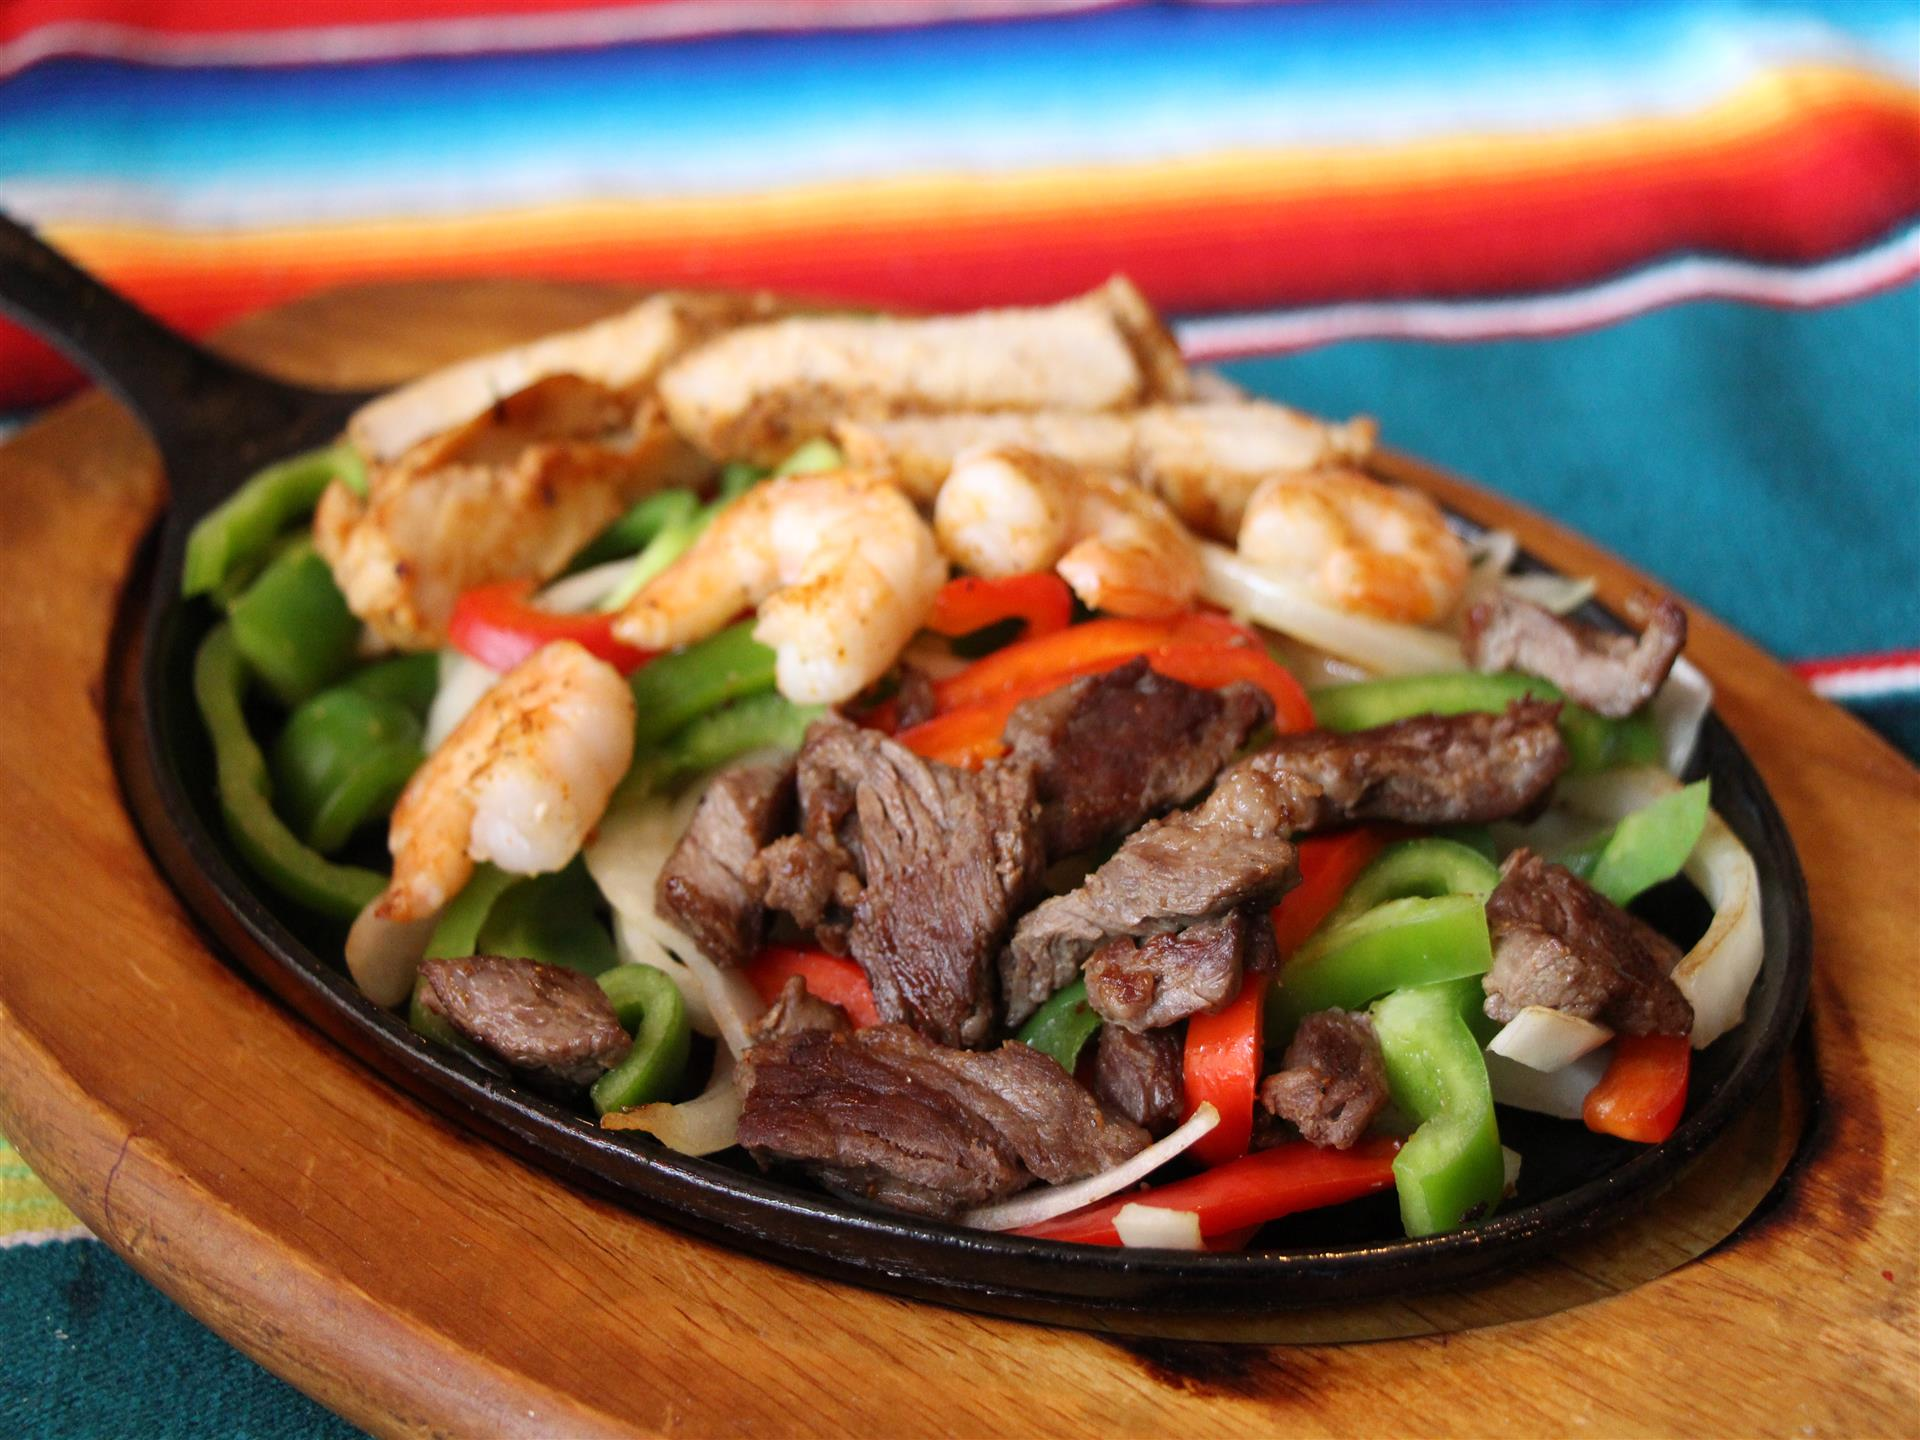 Fajita Skillet with Chicken, Steak and Shrimp on bed of Red and Green Peppers